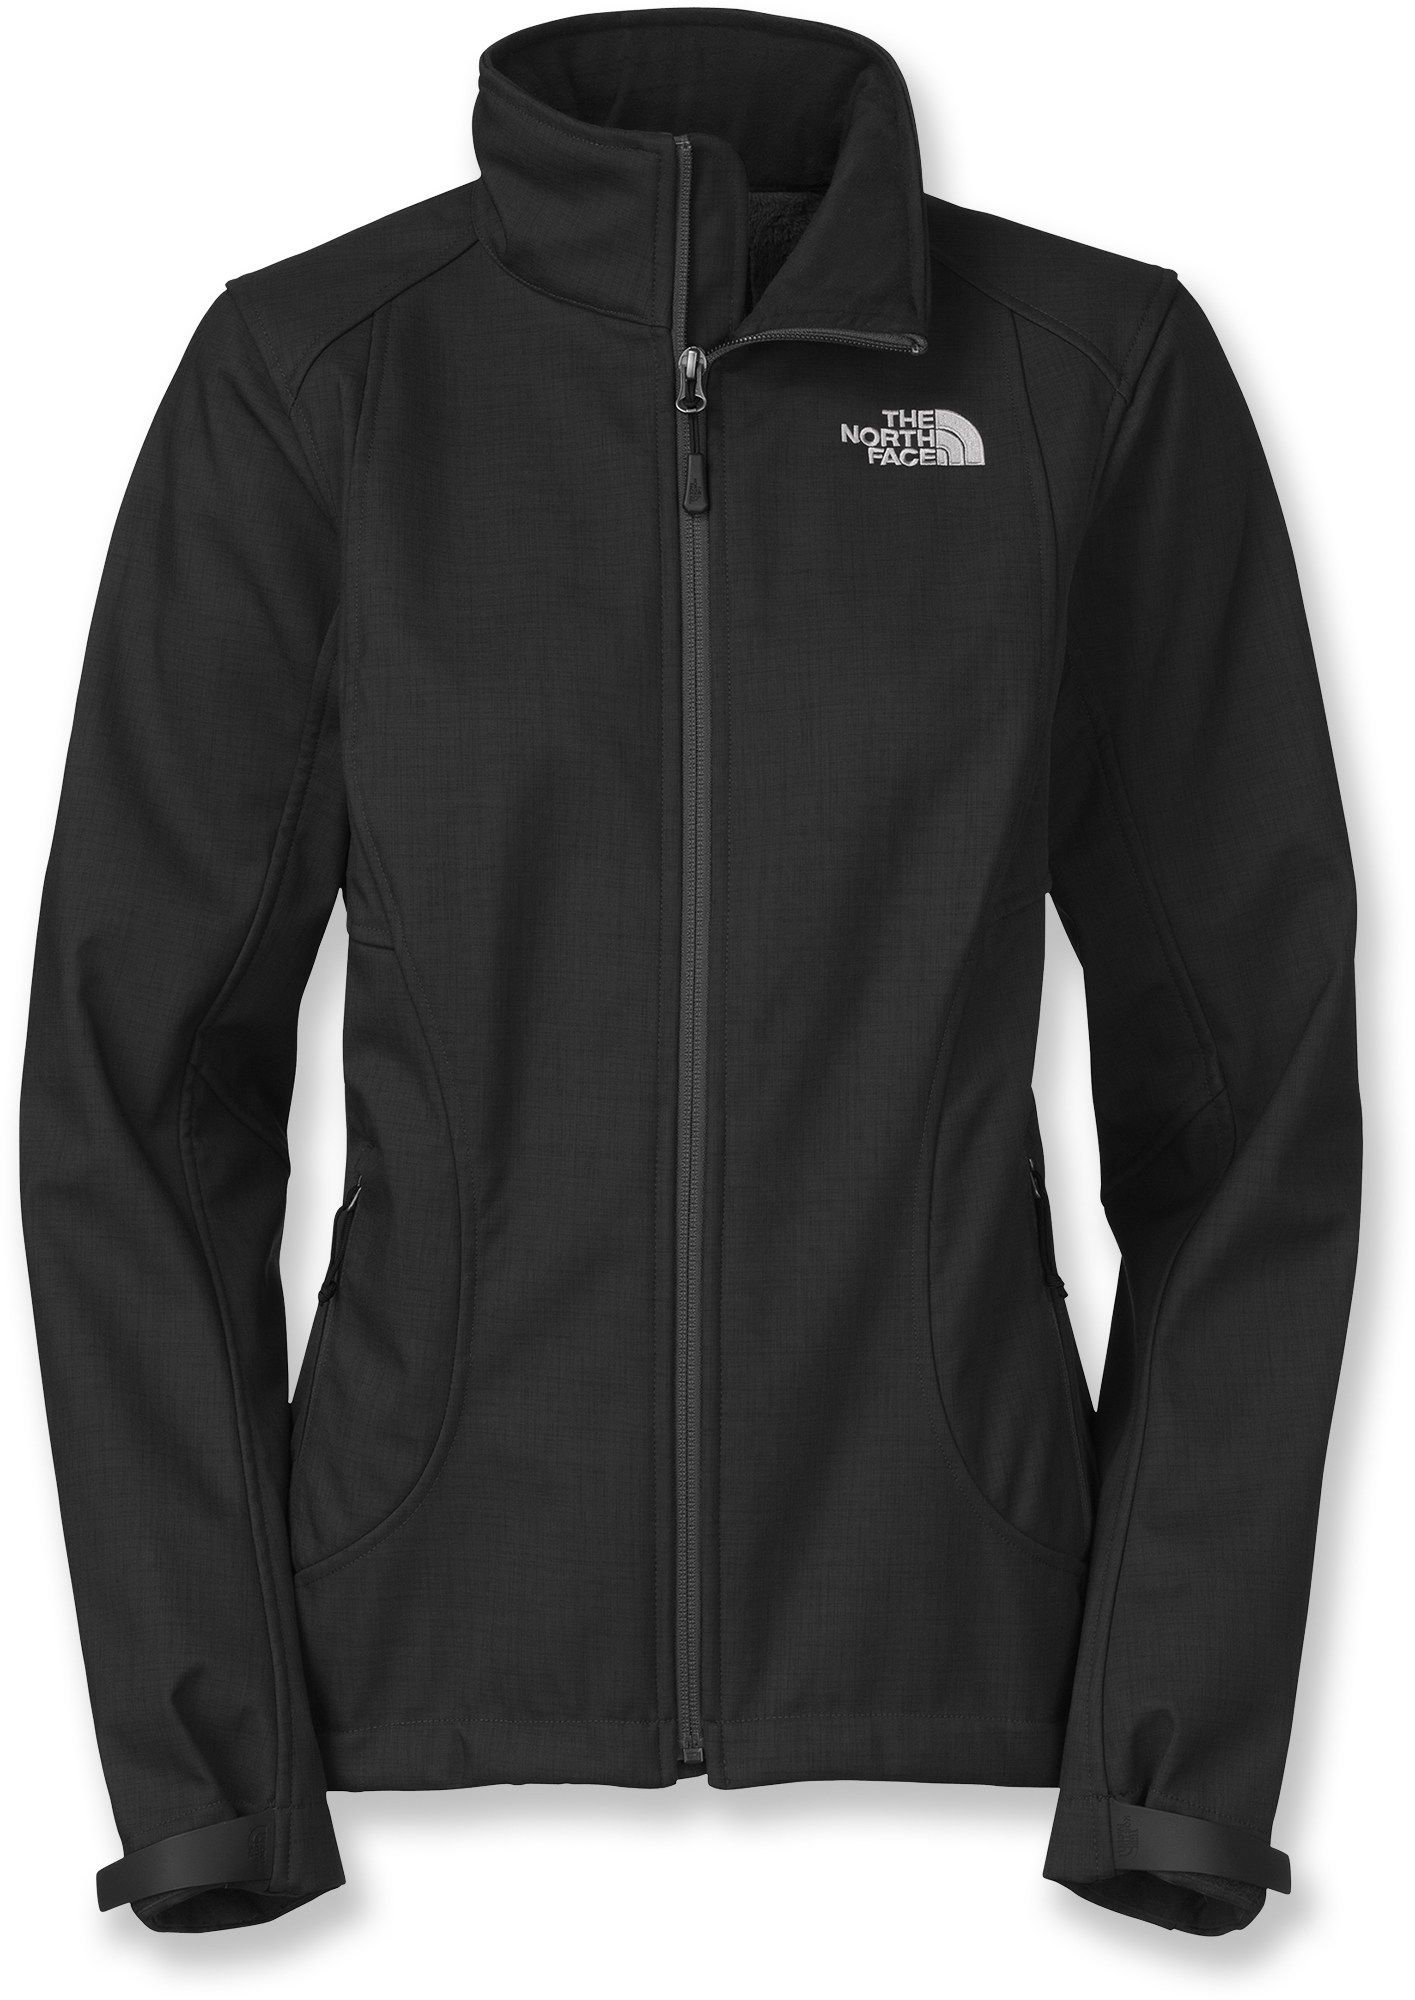 The North Face Chromium Thermal Jacket - Women's - 2012 Closeout - Free Shipping at REI-OUTLET.com